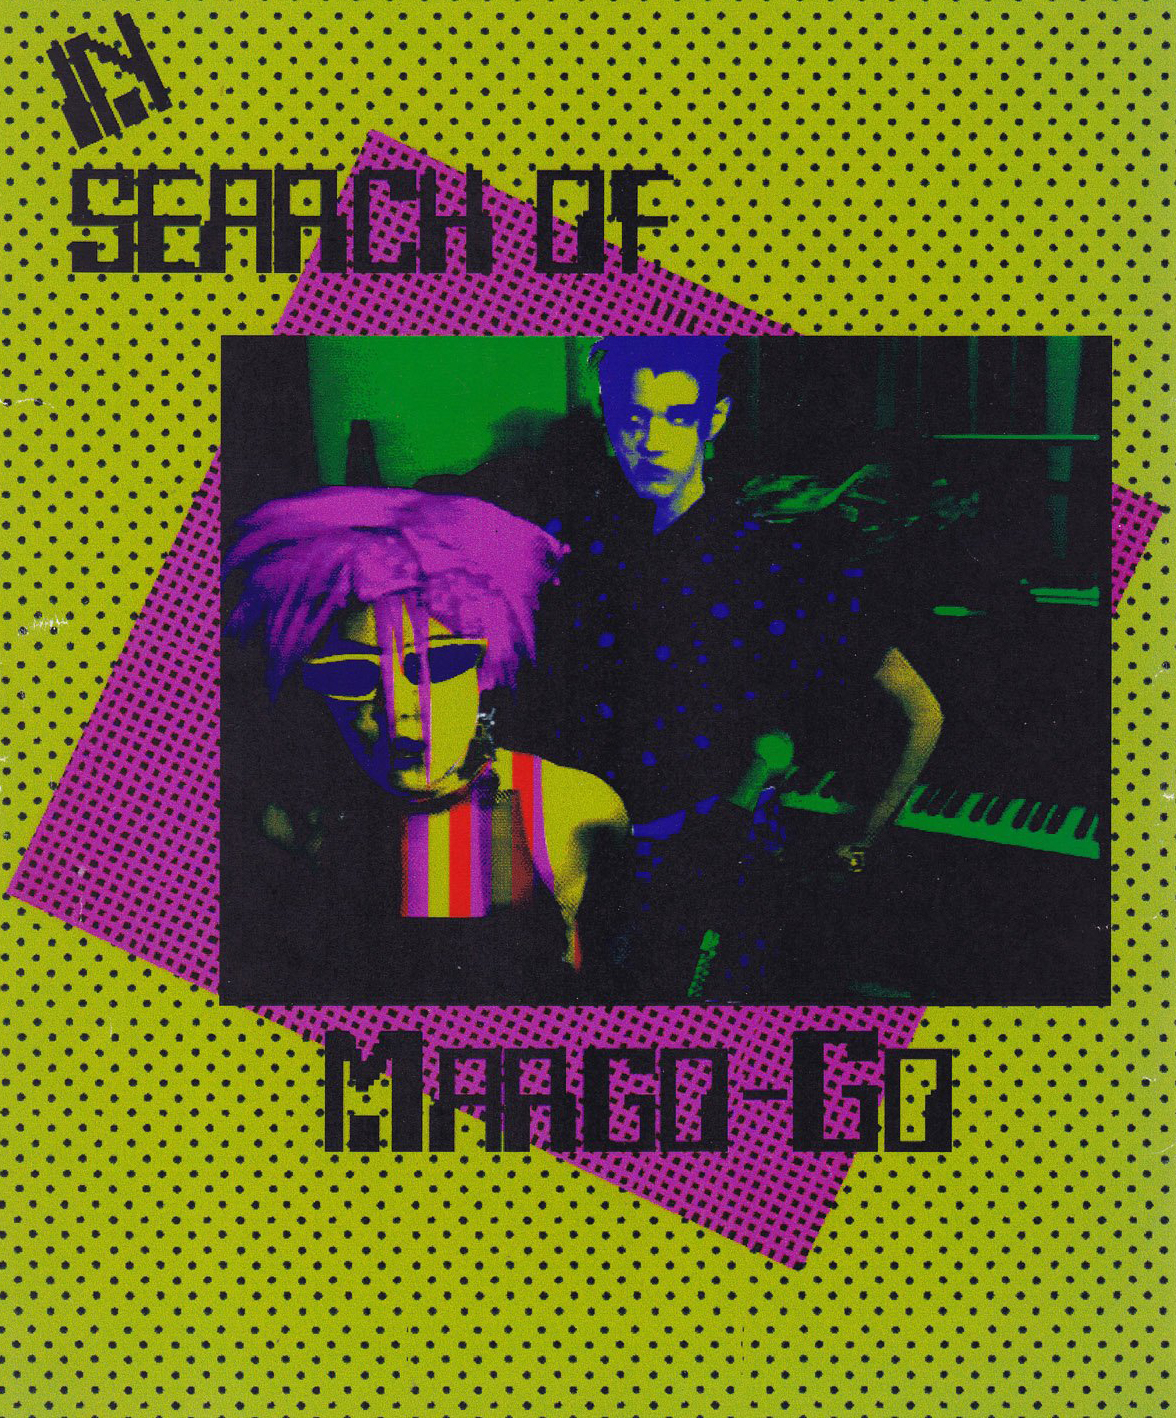 In Search of Margo-Go 90's poster